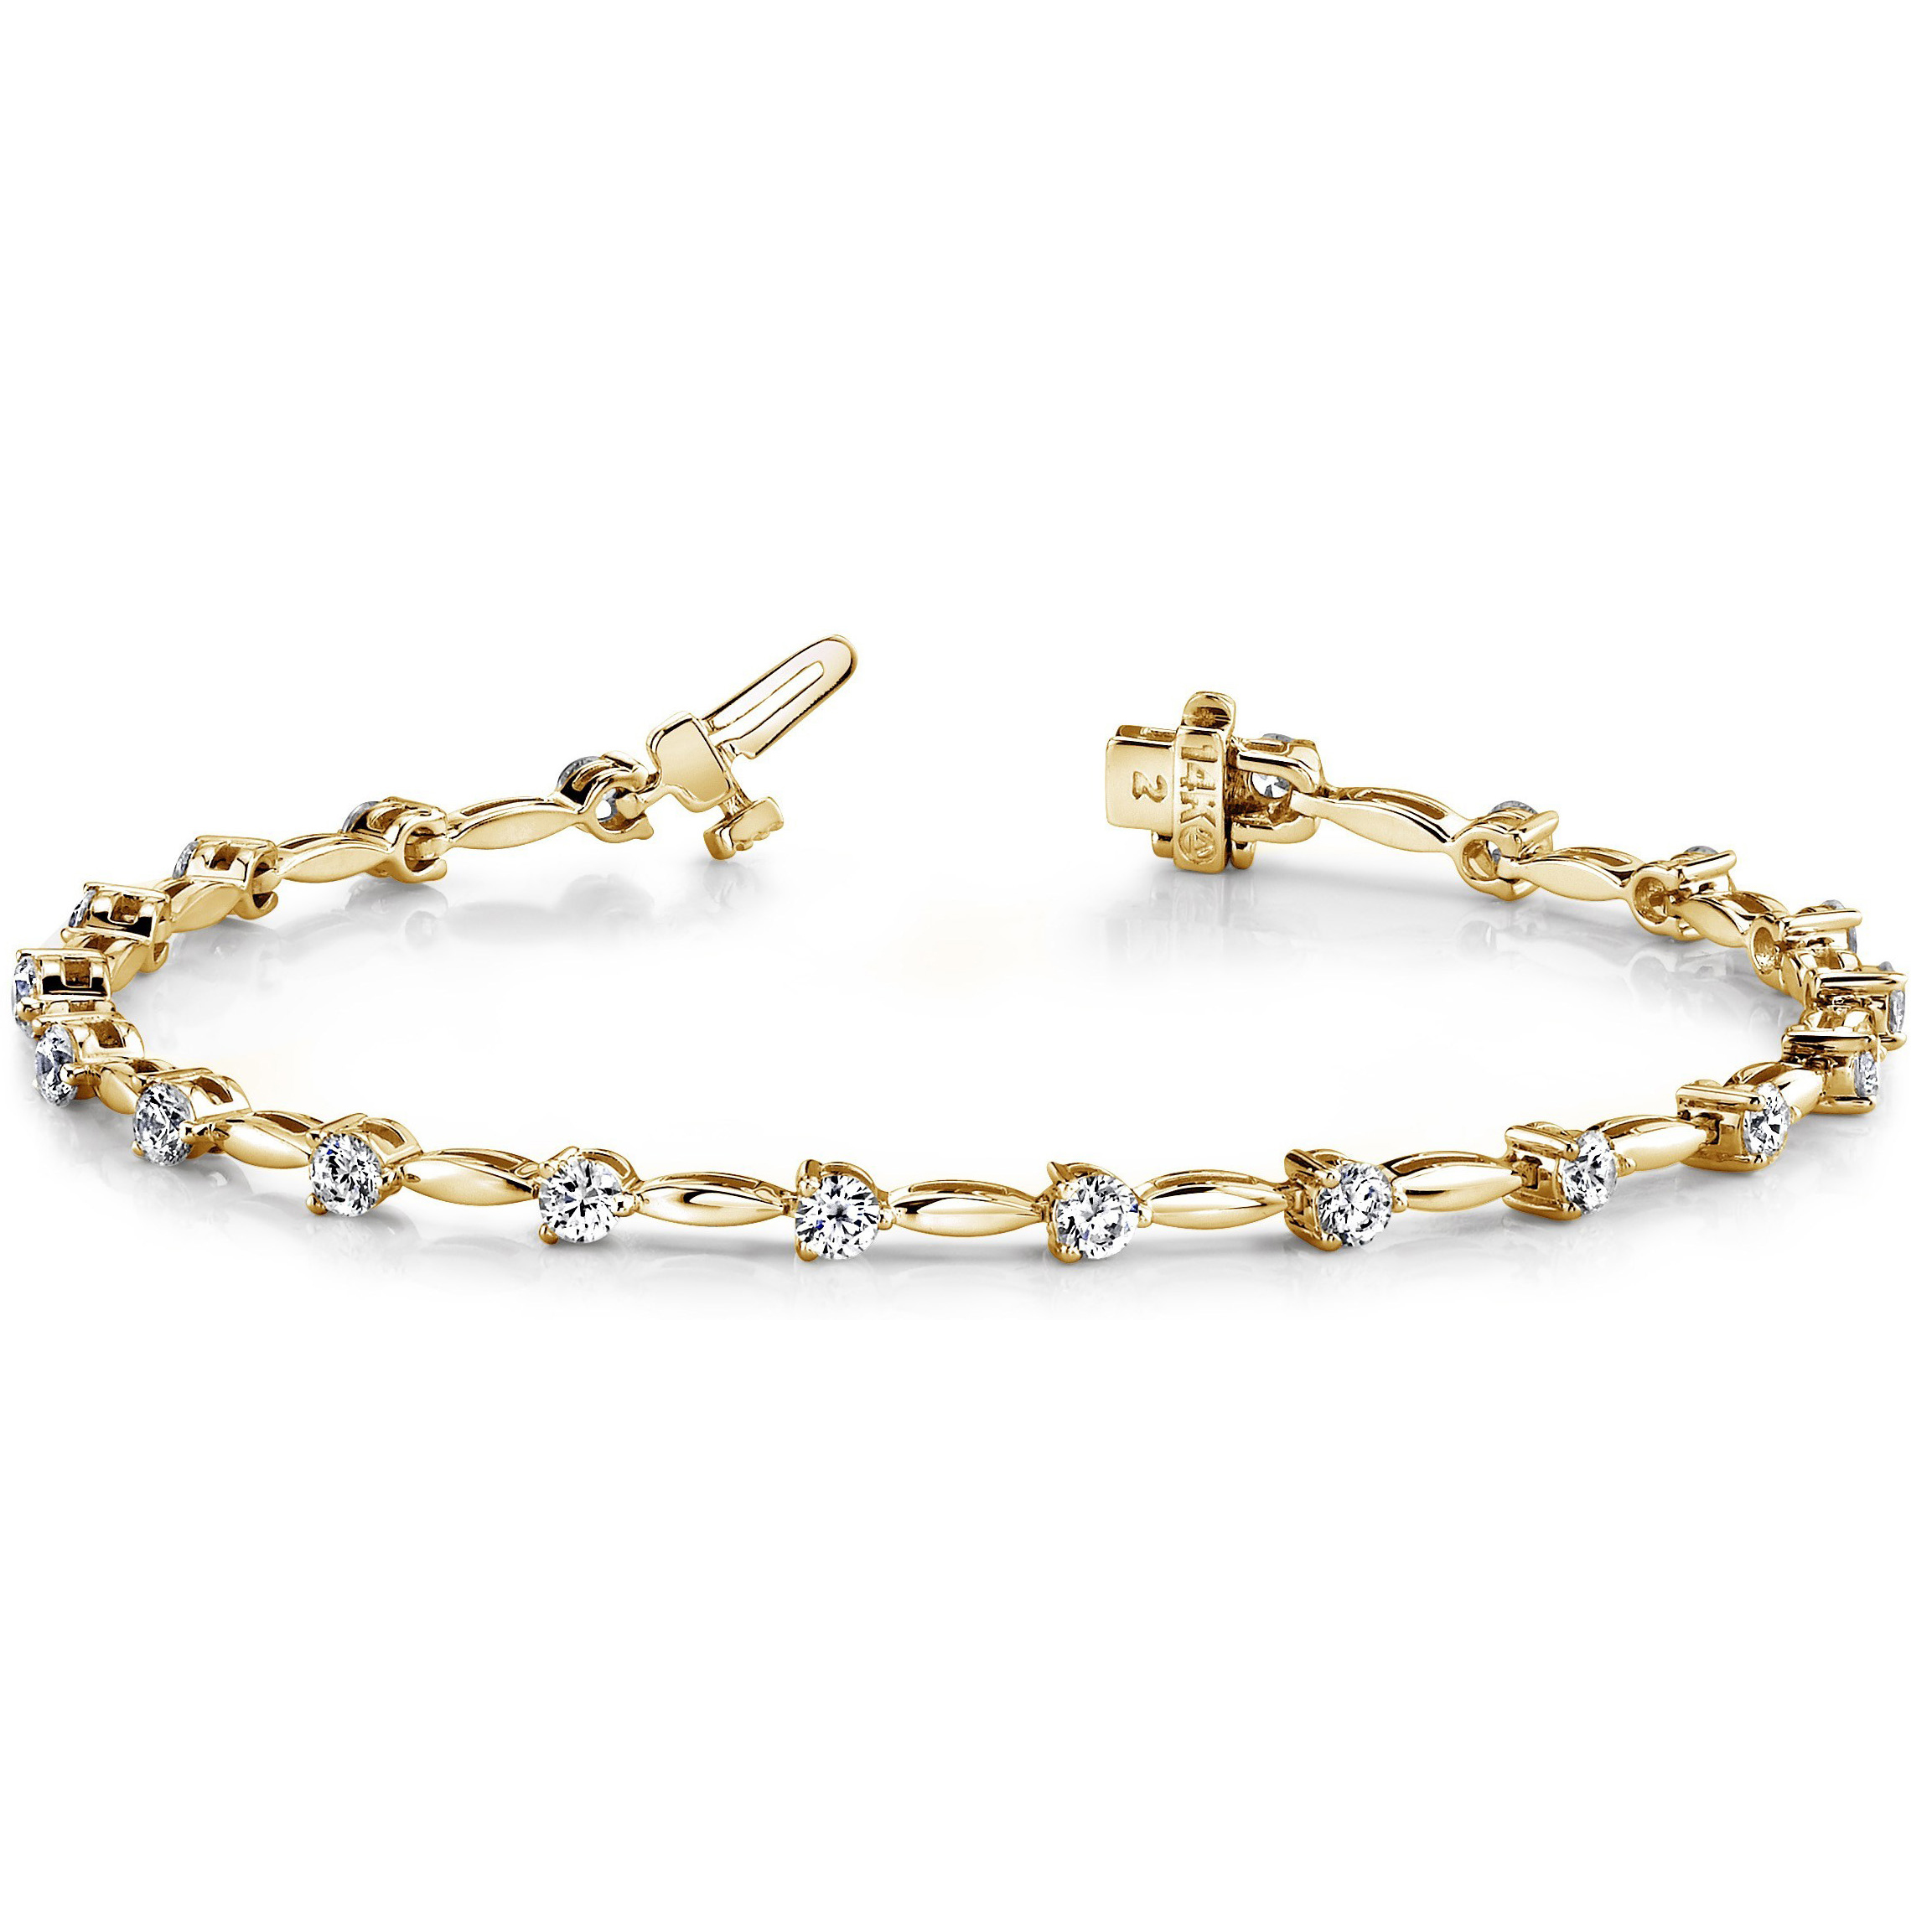 Diamond bracelet 2.00 Carat Diamonds 14K or 18K Gold